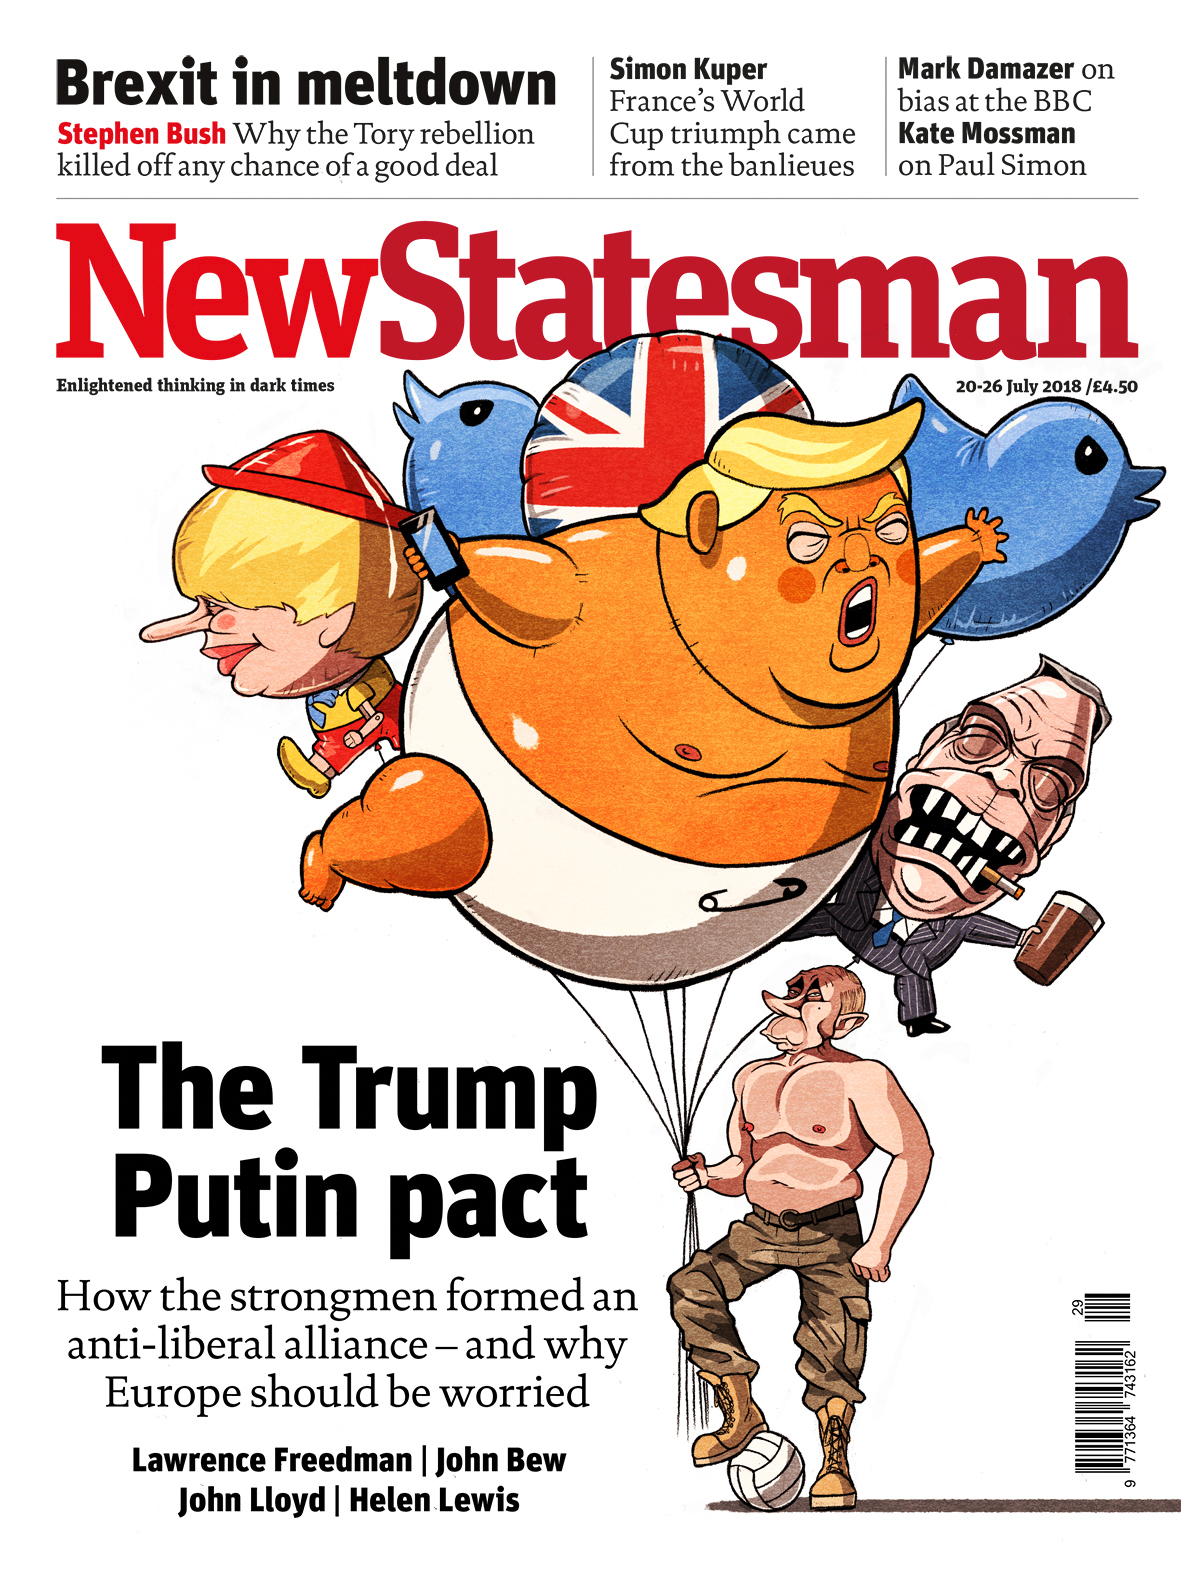 NewStatesman_20-26July2018.jpg